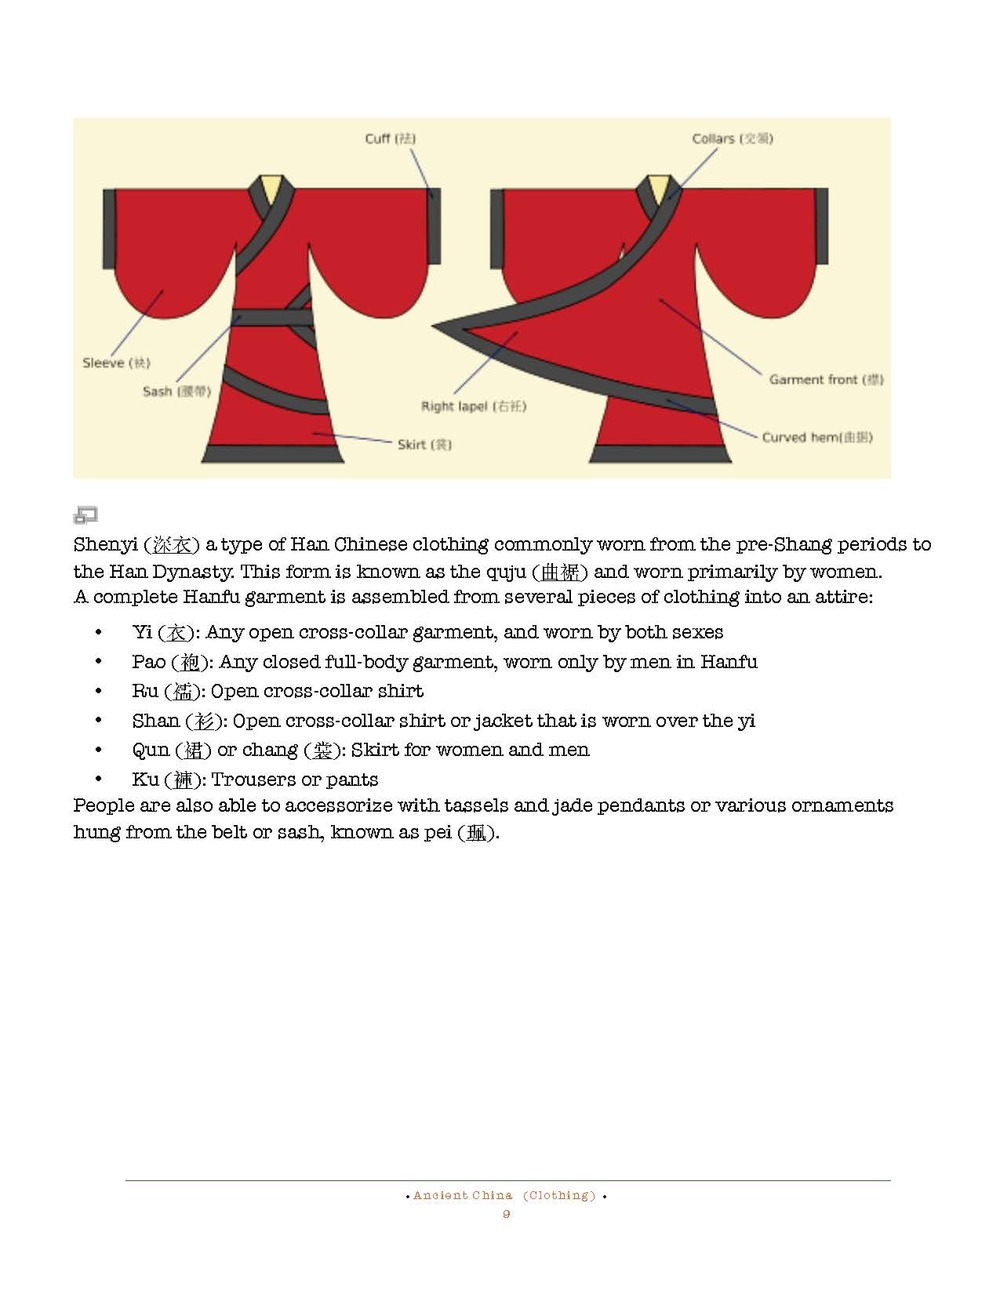 HOCE- Ancient China Notes (clothing)_Page_09.jpg